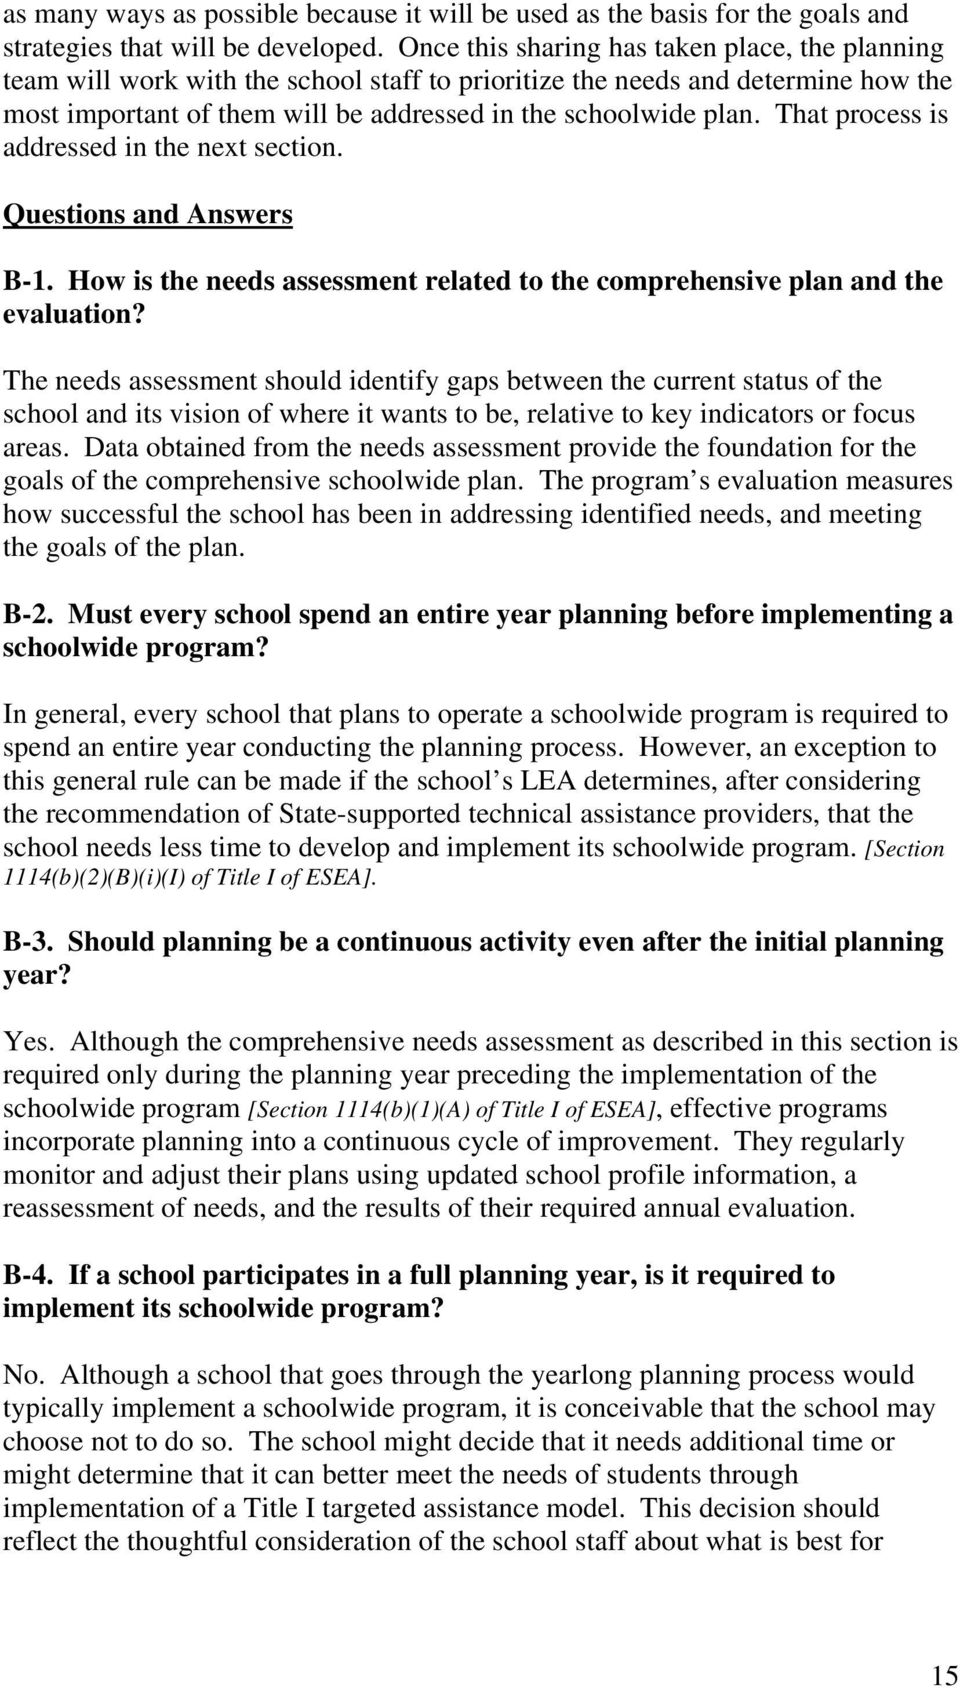 That process is addressed in the next section. Questions and Answers B-1. How is the needs assessment related to the comprehensive plan and the evaluation?